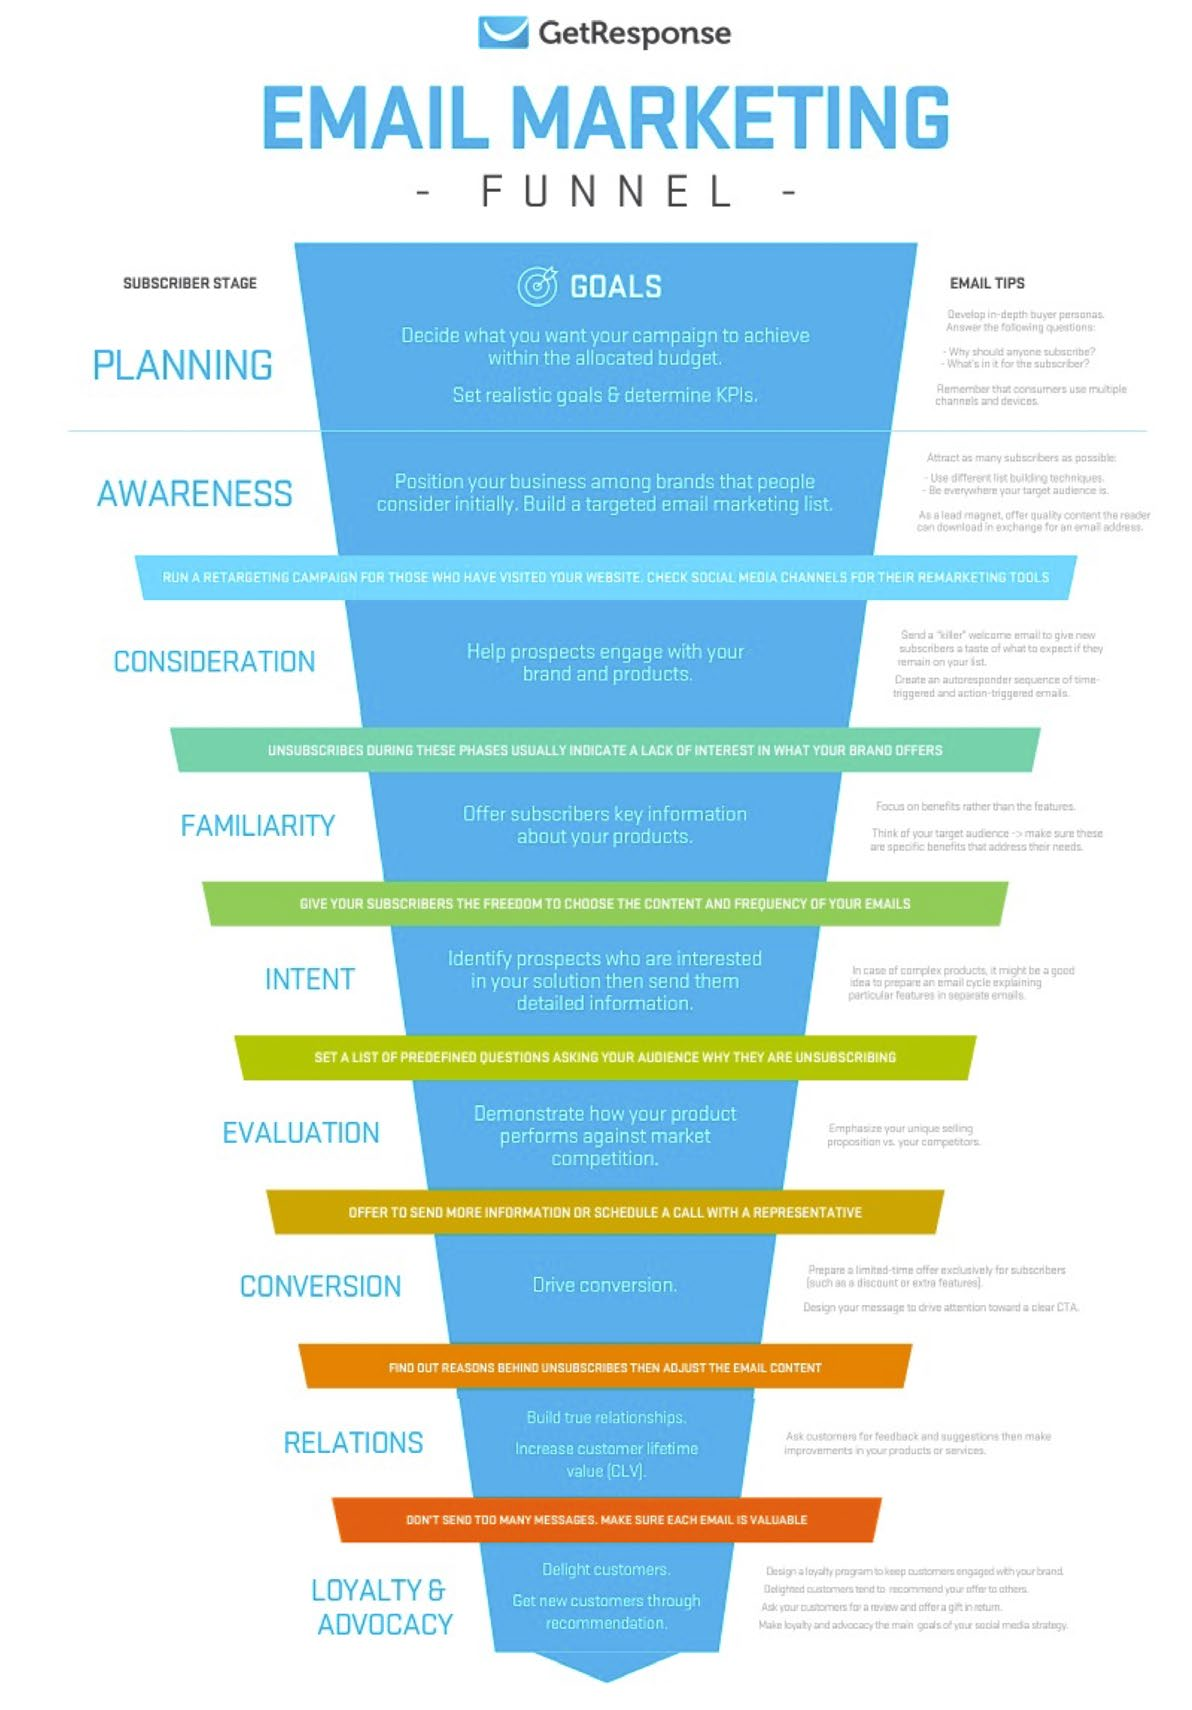 Img. 10 - An example of an email marketing funnel.